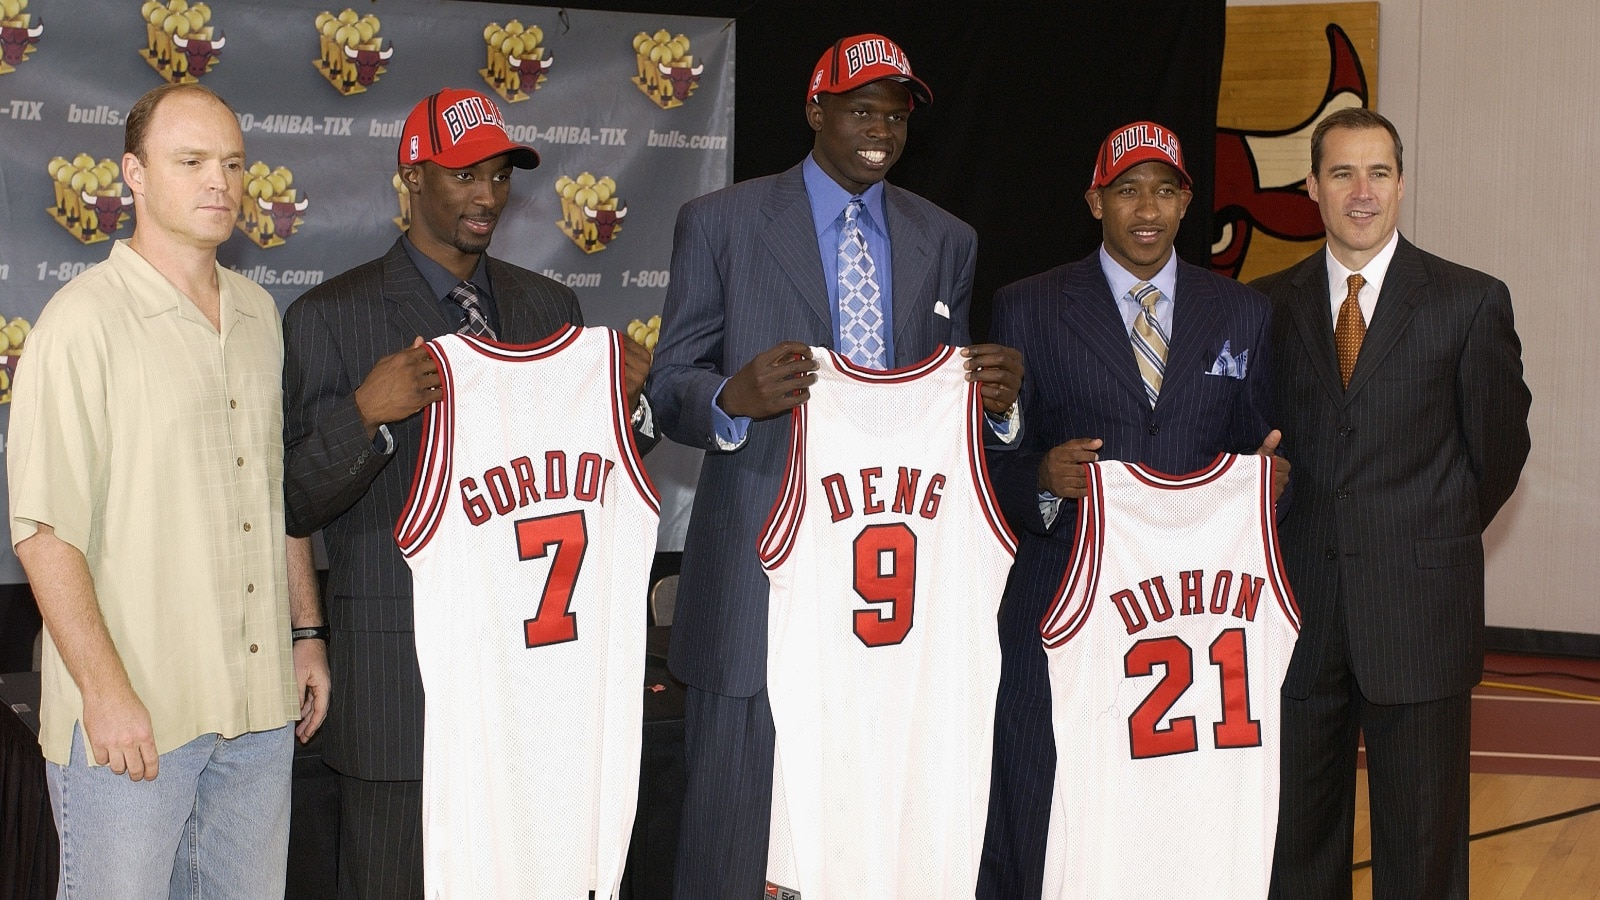 2004 NBA Draft: Ben Gordon and Luol Deng